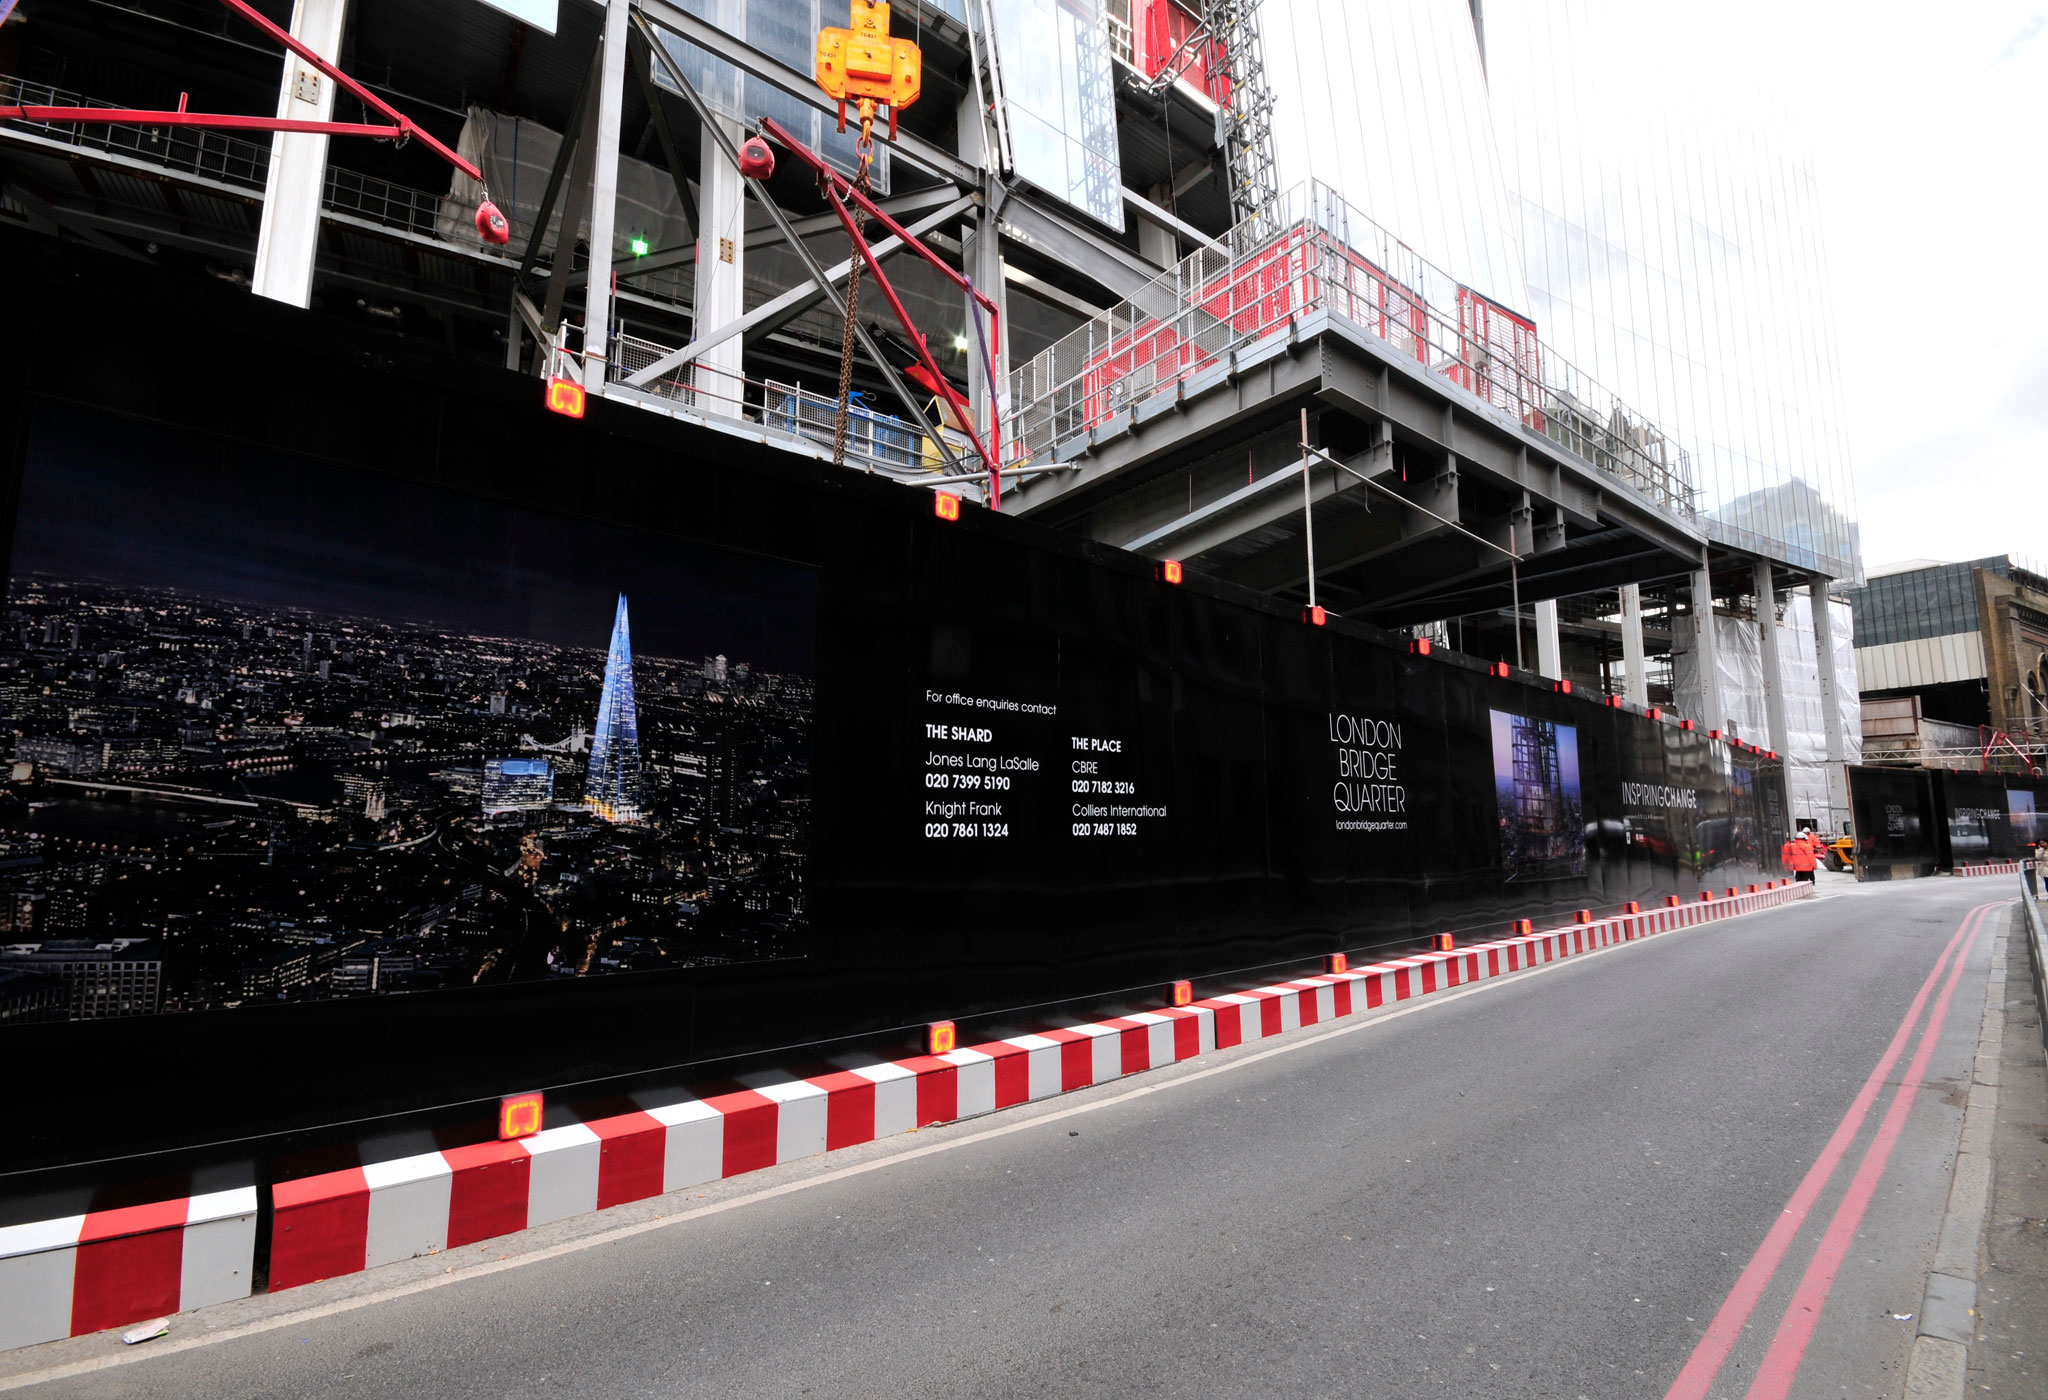 The Shard advertising hoarding by Octink